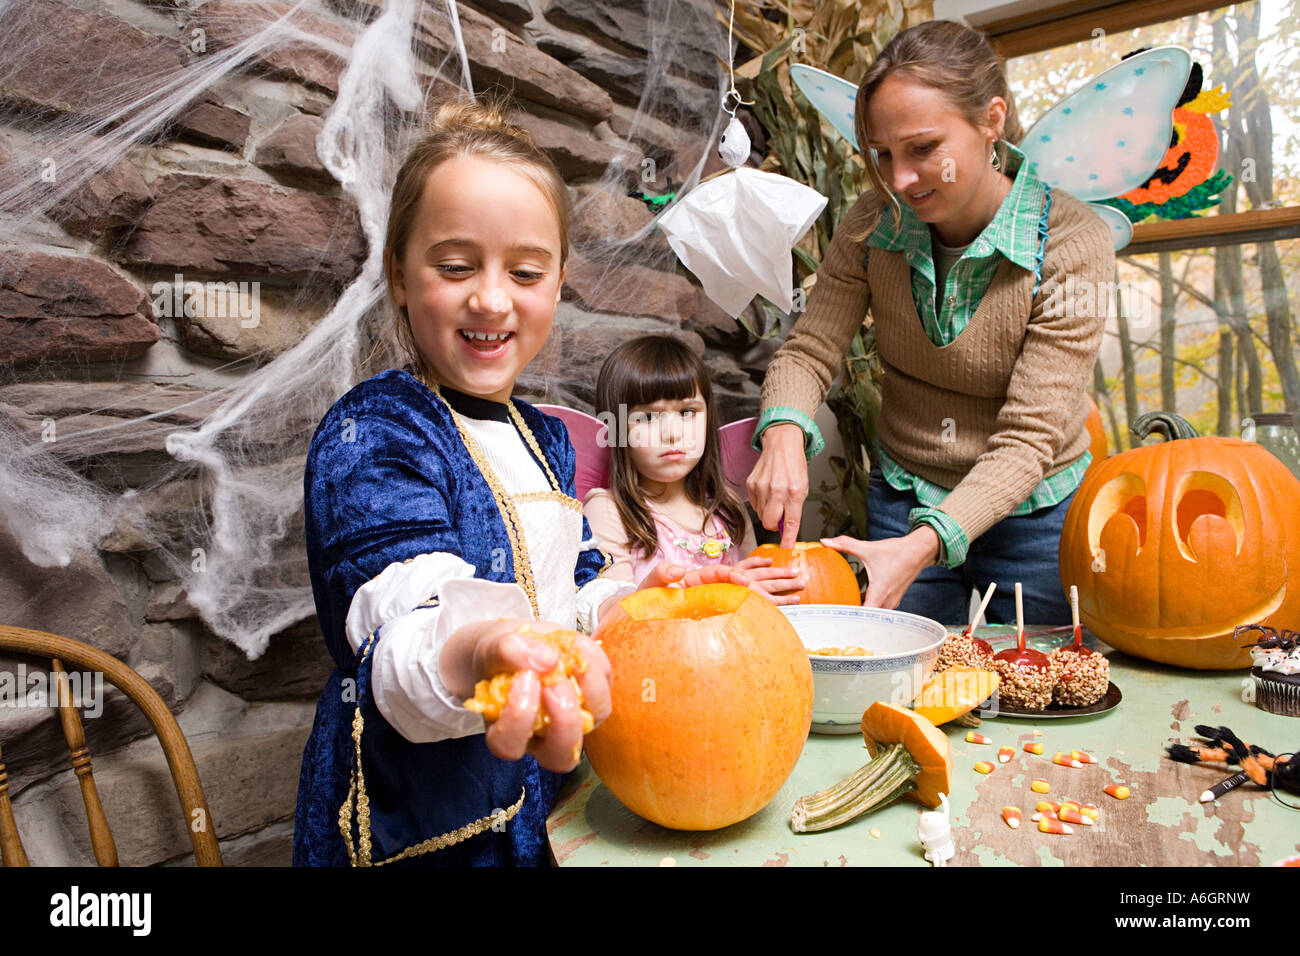 Carving pumpkins - Stock Image